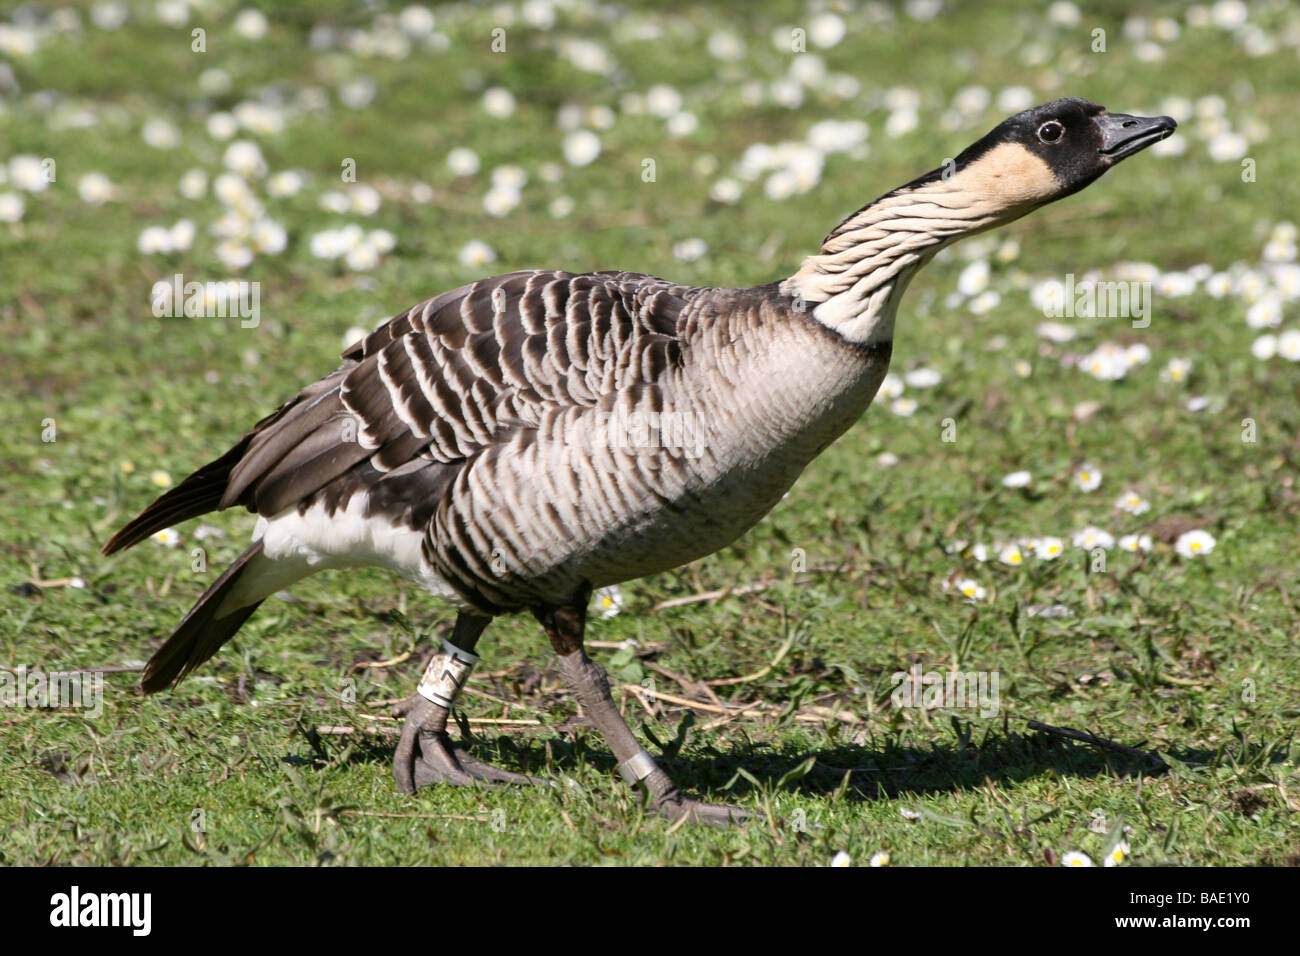 Threat Display Of Hawaiian Goose or Nēnē Branta sandvicensis Taken At Martin Mere WWT, Lancashire UK - Stock Image